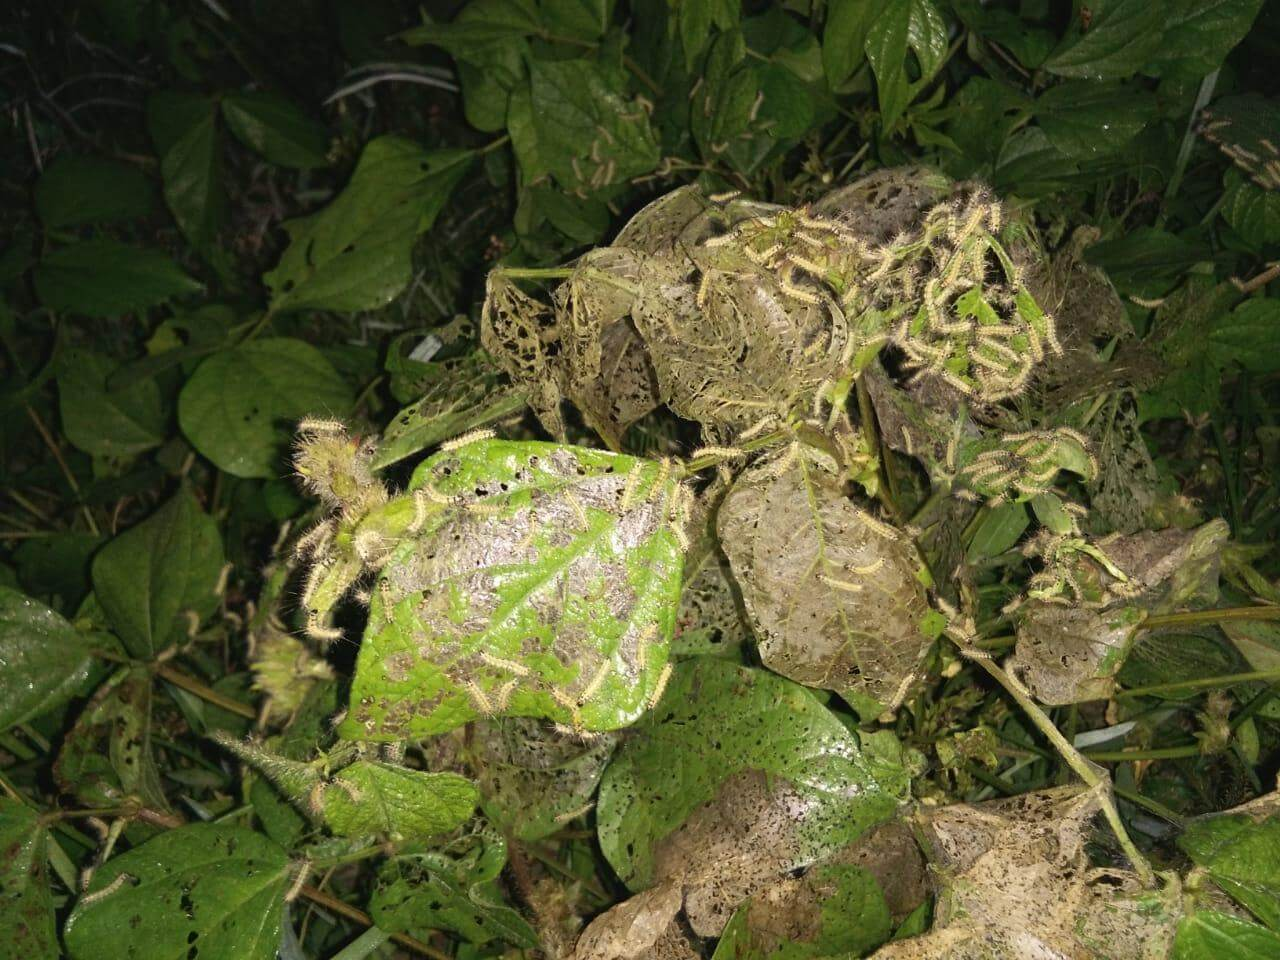 Black gram crops in Dhakuakhona under attack of insects